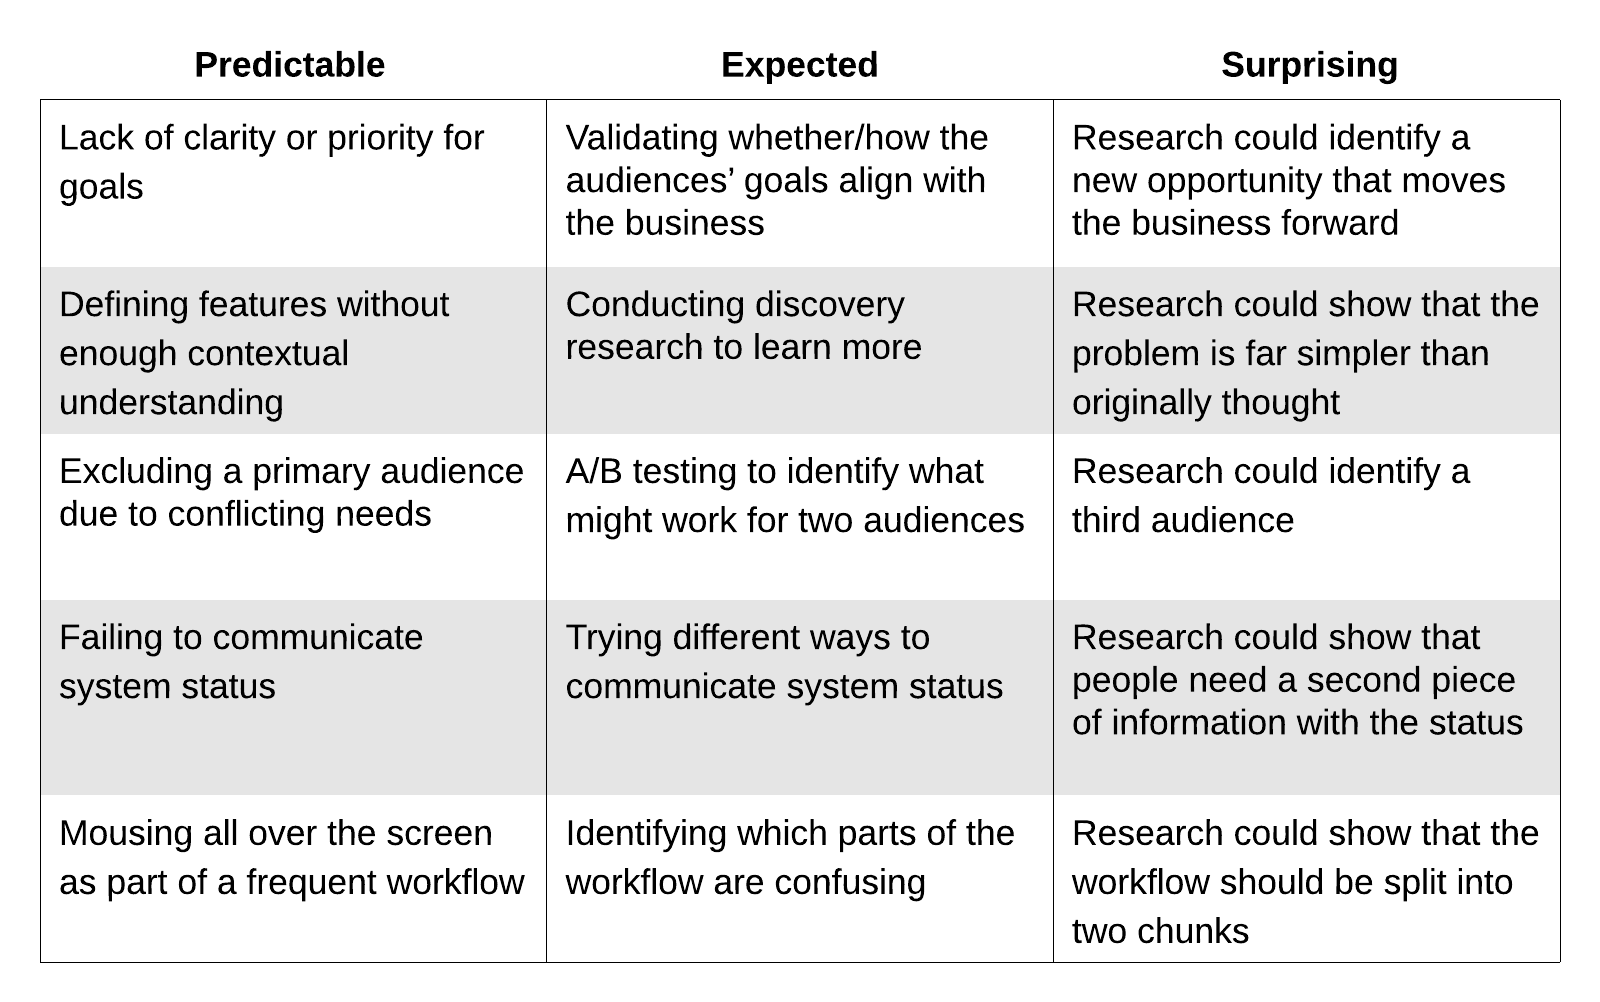 A table showing examples of failures. PDF link in caption.